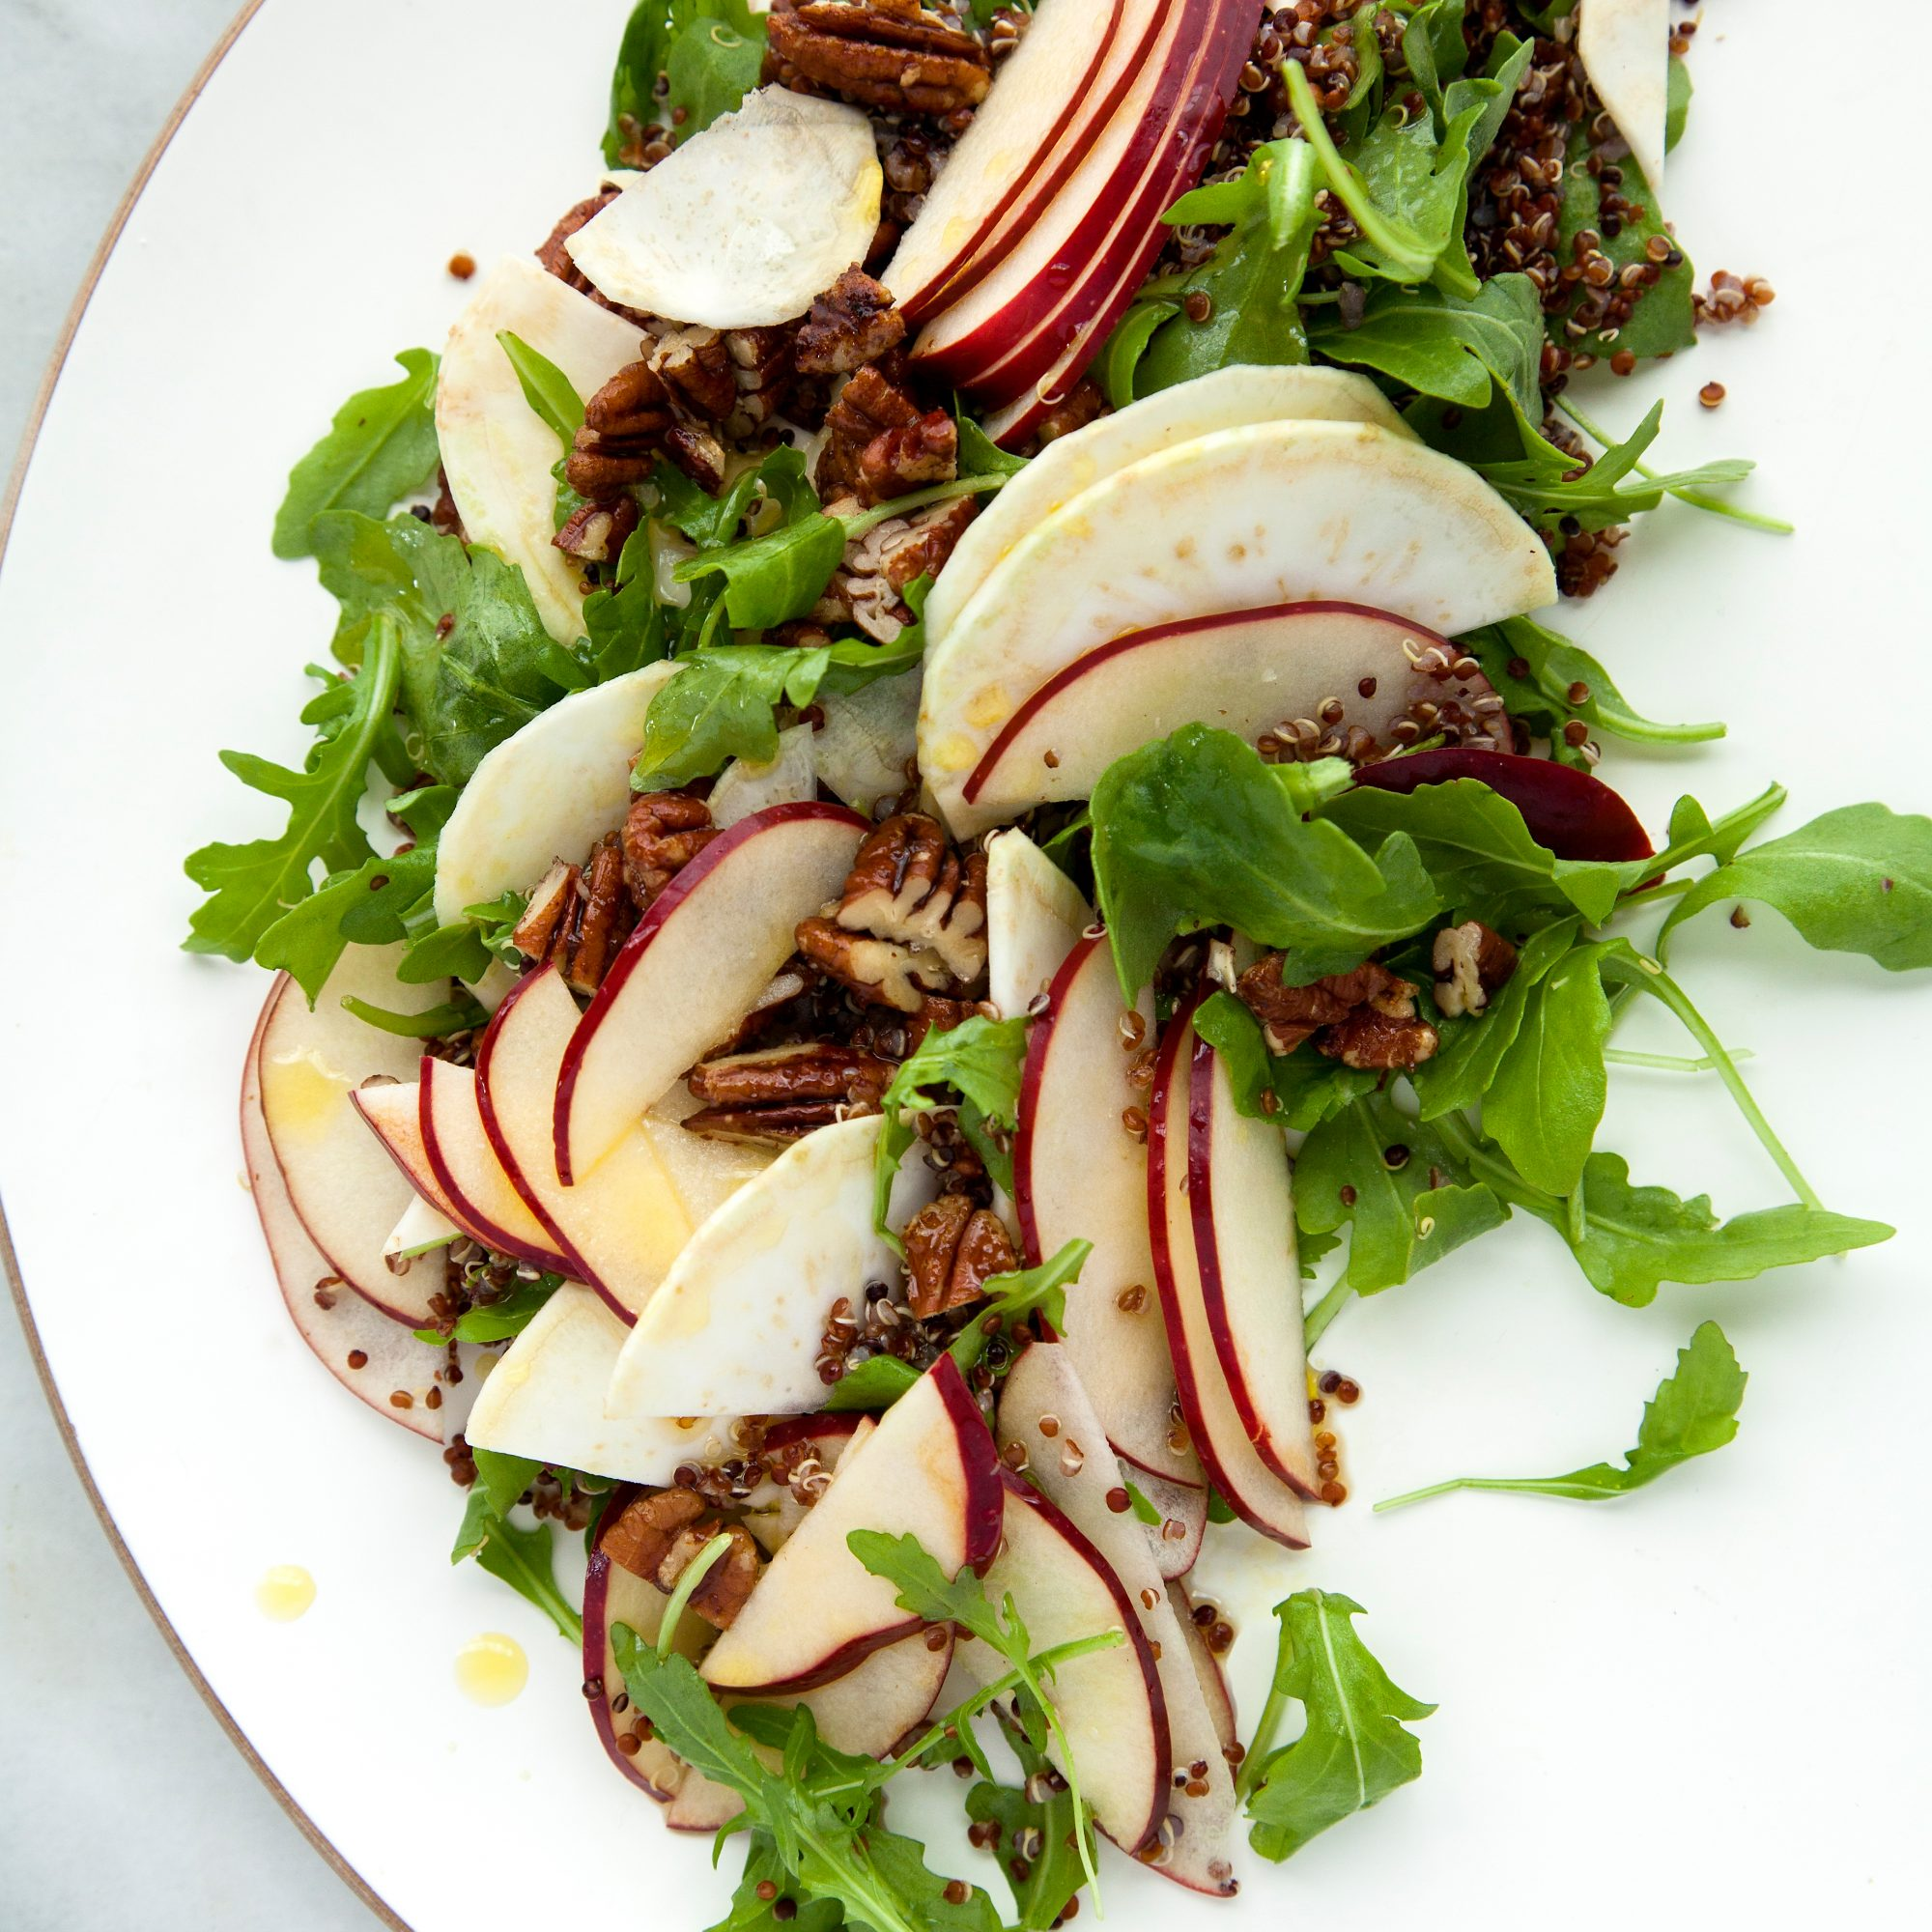 201404-r-quinoa-with-apples-celery-root-arugula-and-pecans.jpg